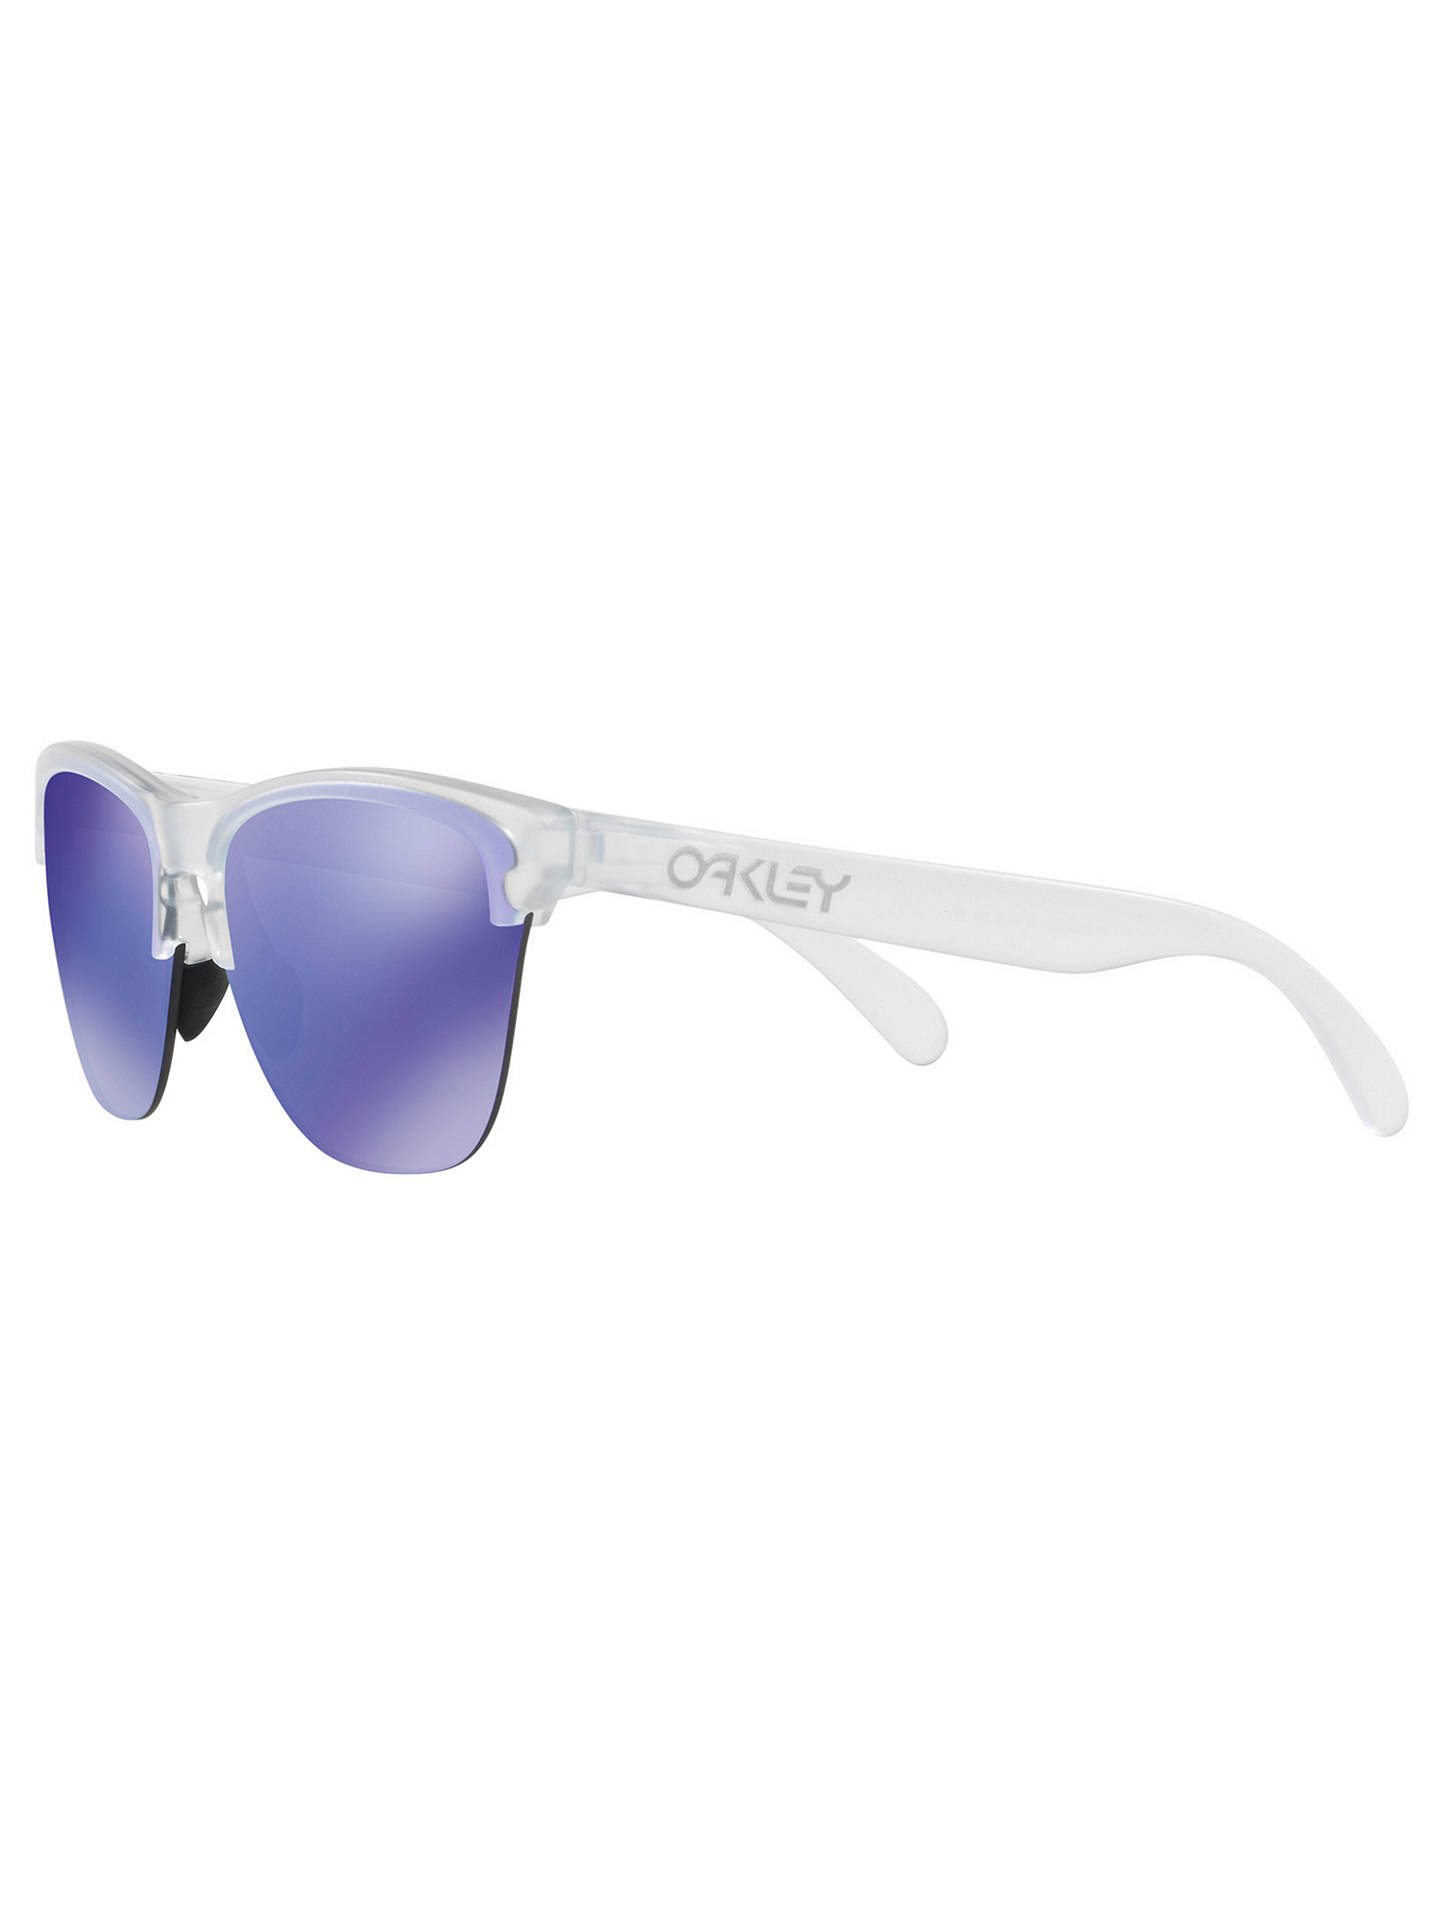 c43749e938 Oakley OO9374 Men s Frogskins Lite Round Sunglasses at John Lewis ...